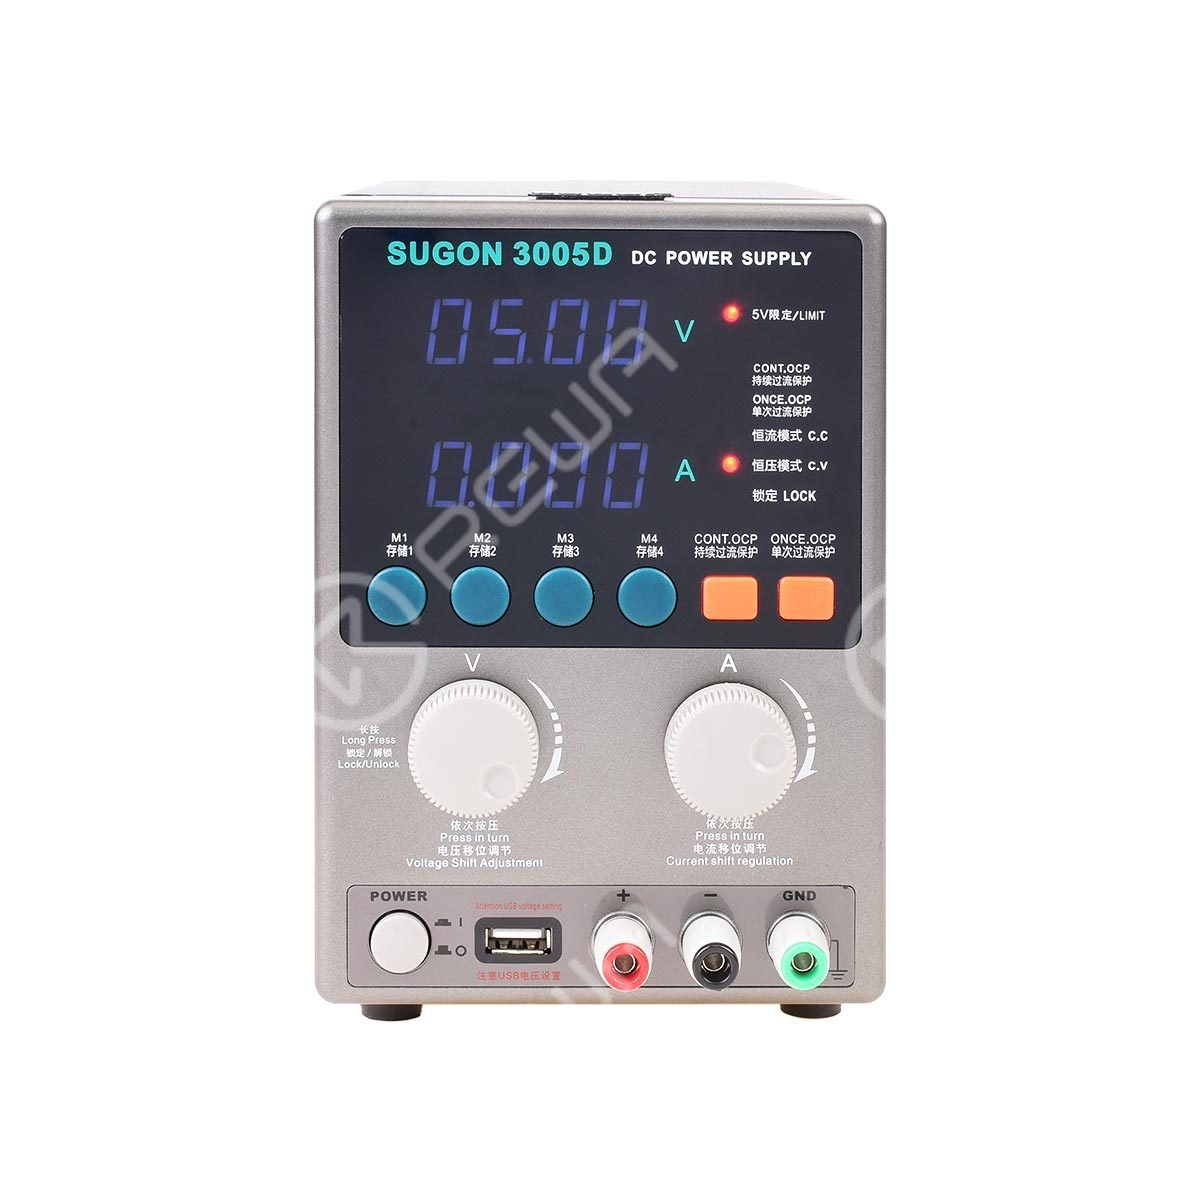 SUGON 3005D DC Power Supply